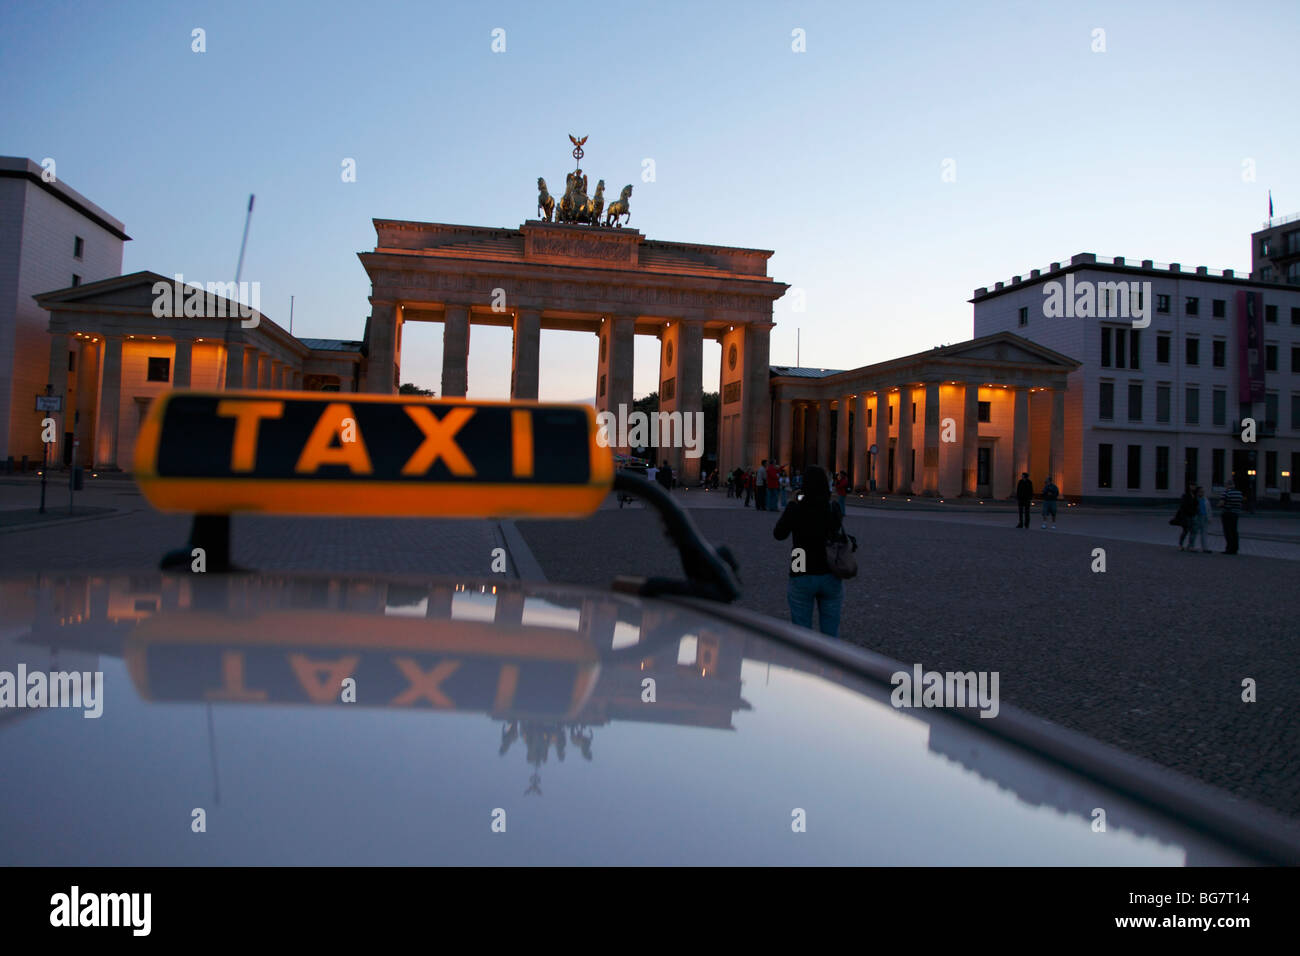 7788220855 Gate Taxi Stock Photos   Gate Taxi Stock Images - Alamy